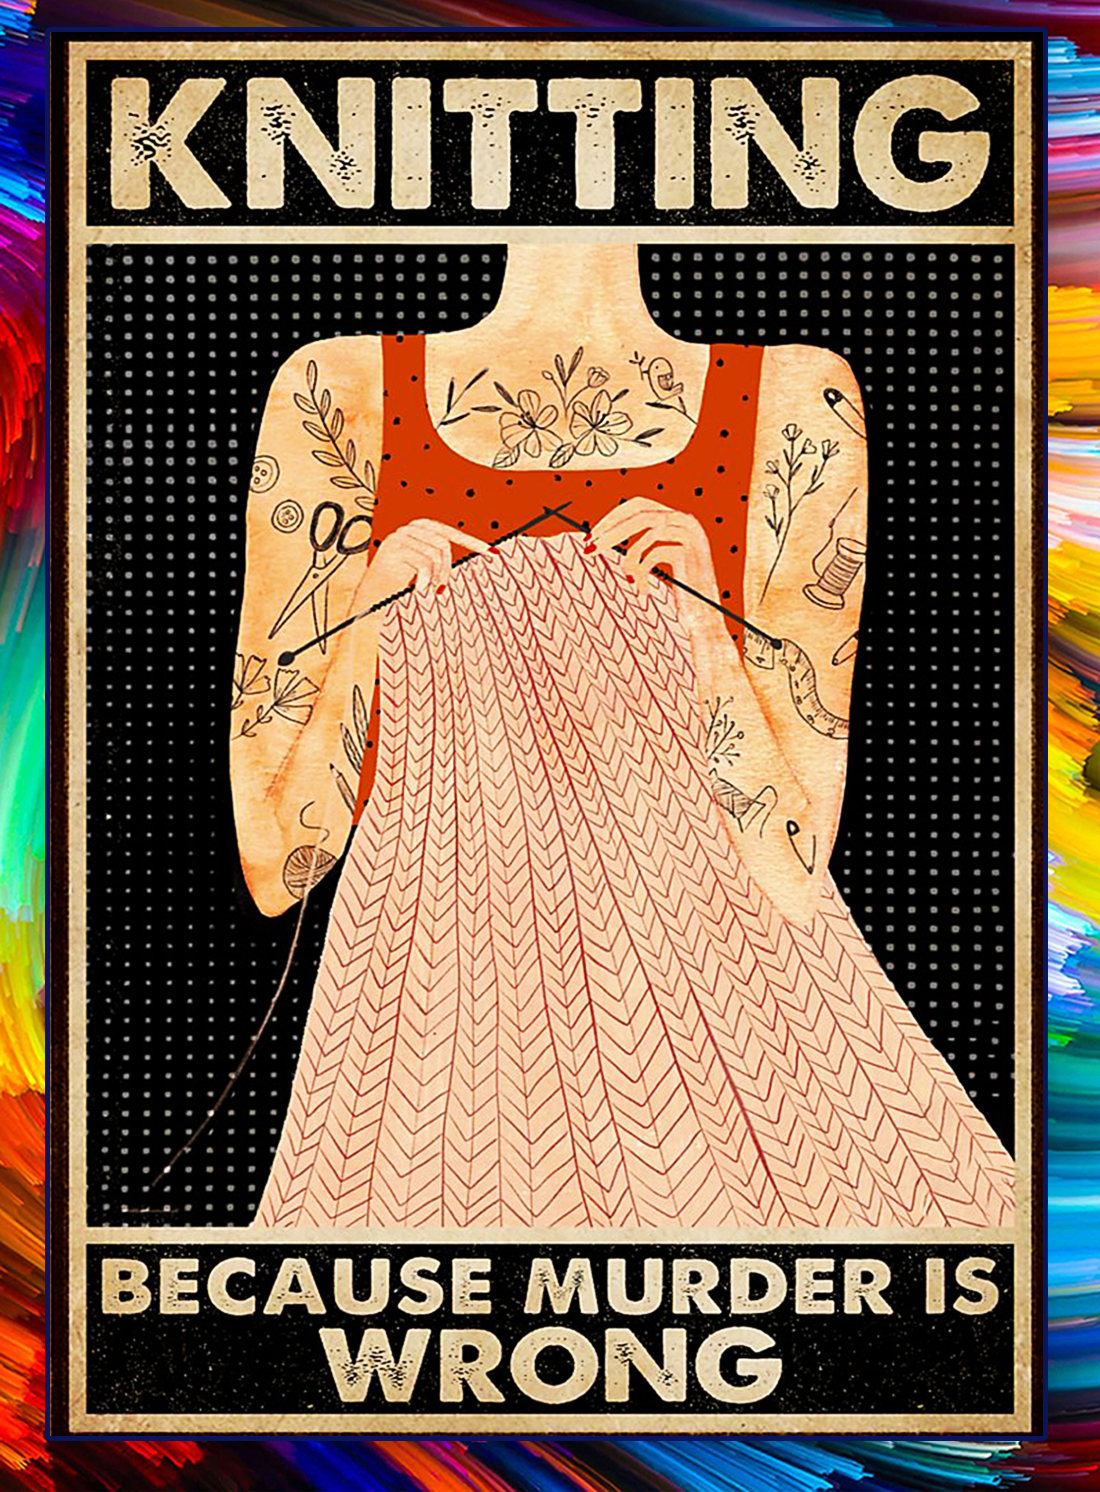 Tattoo girl knitting because murder is wrong poster